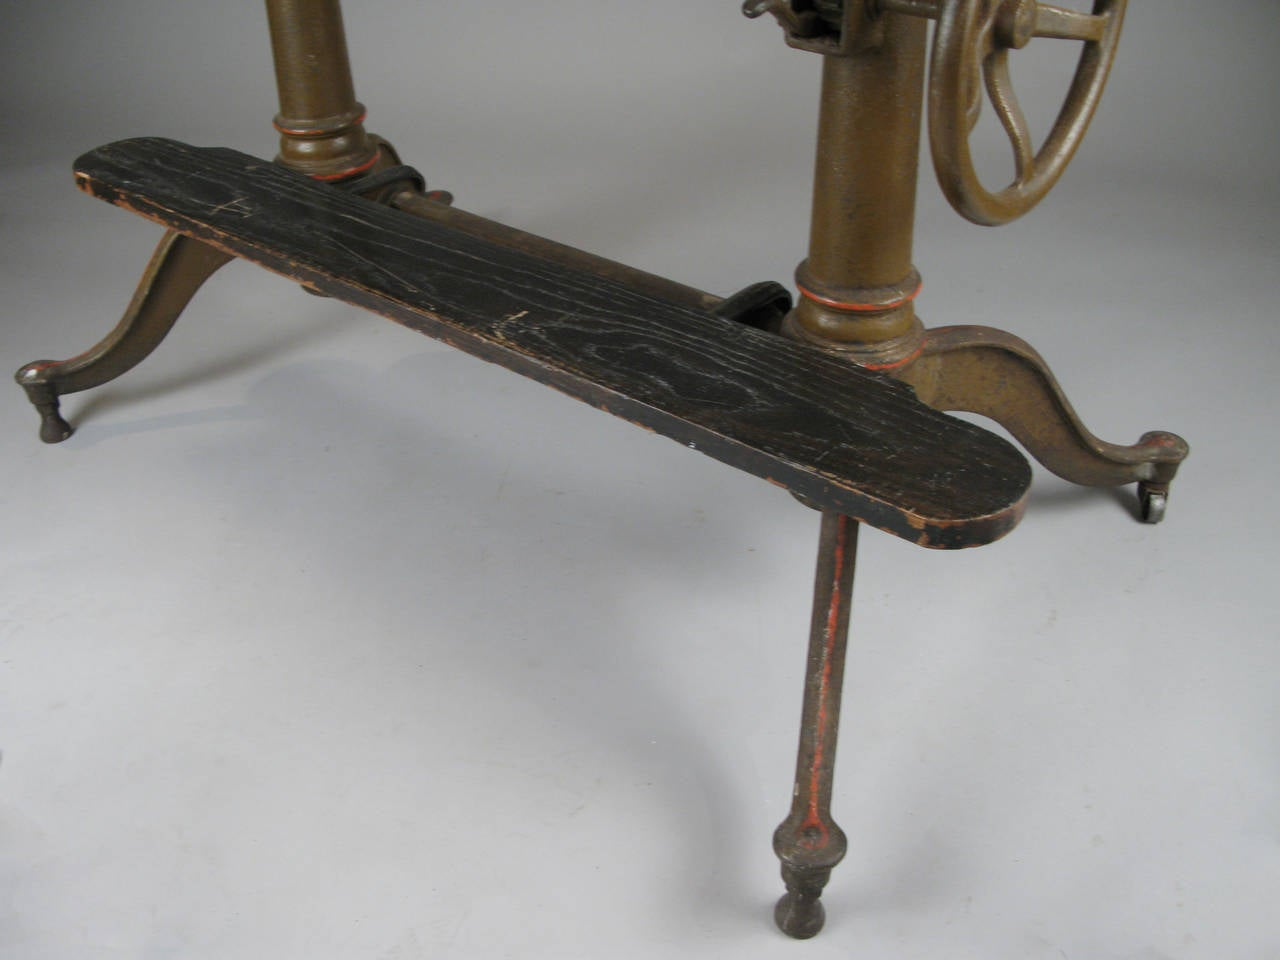 Antique Industrial Cast Iron Adjustable Drafting Table At